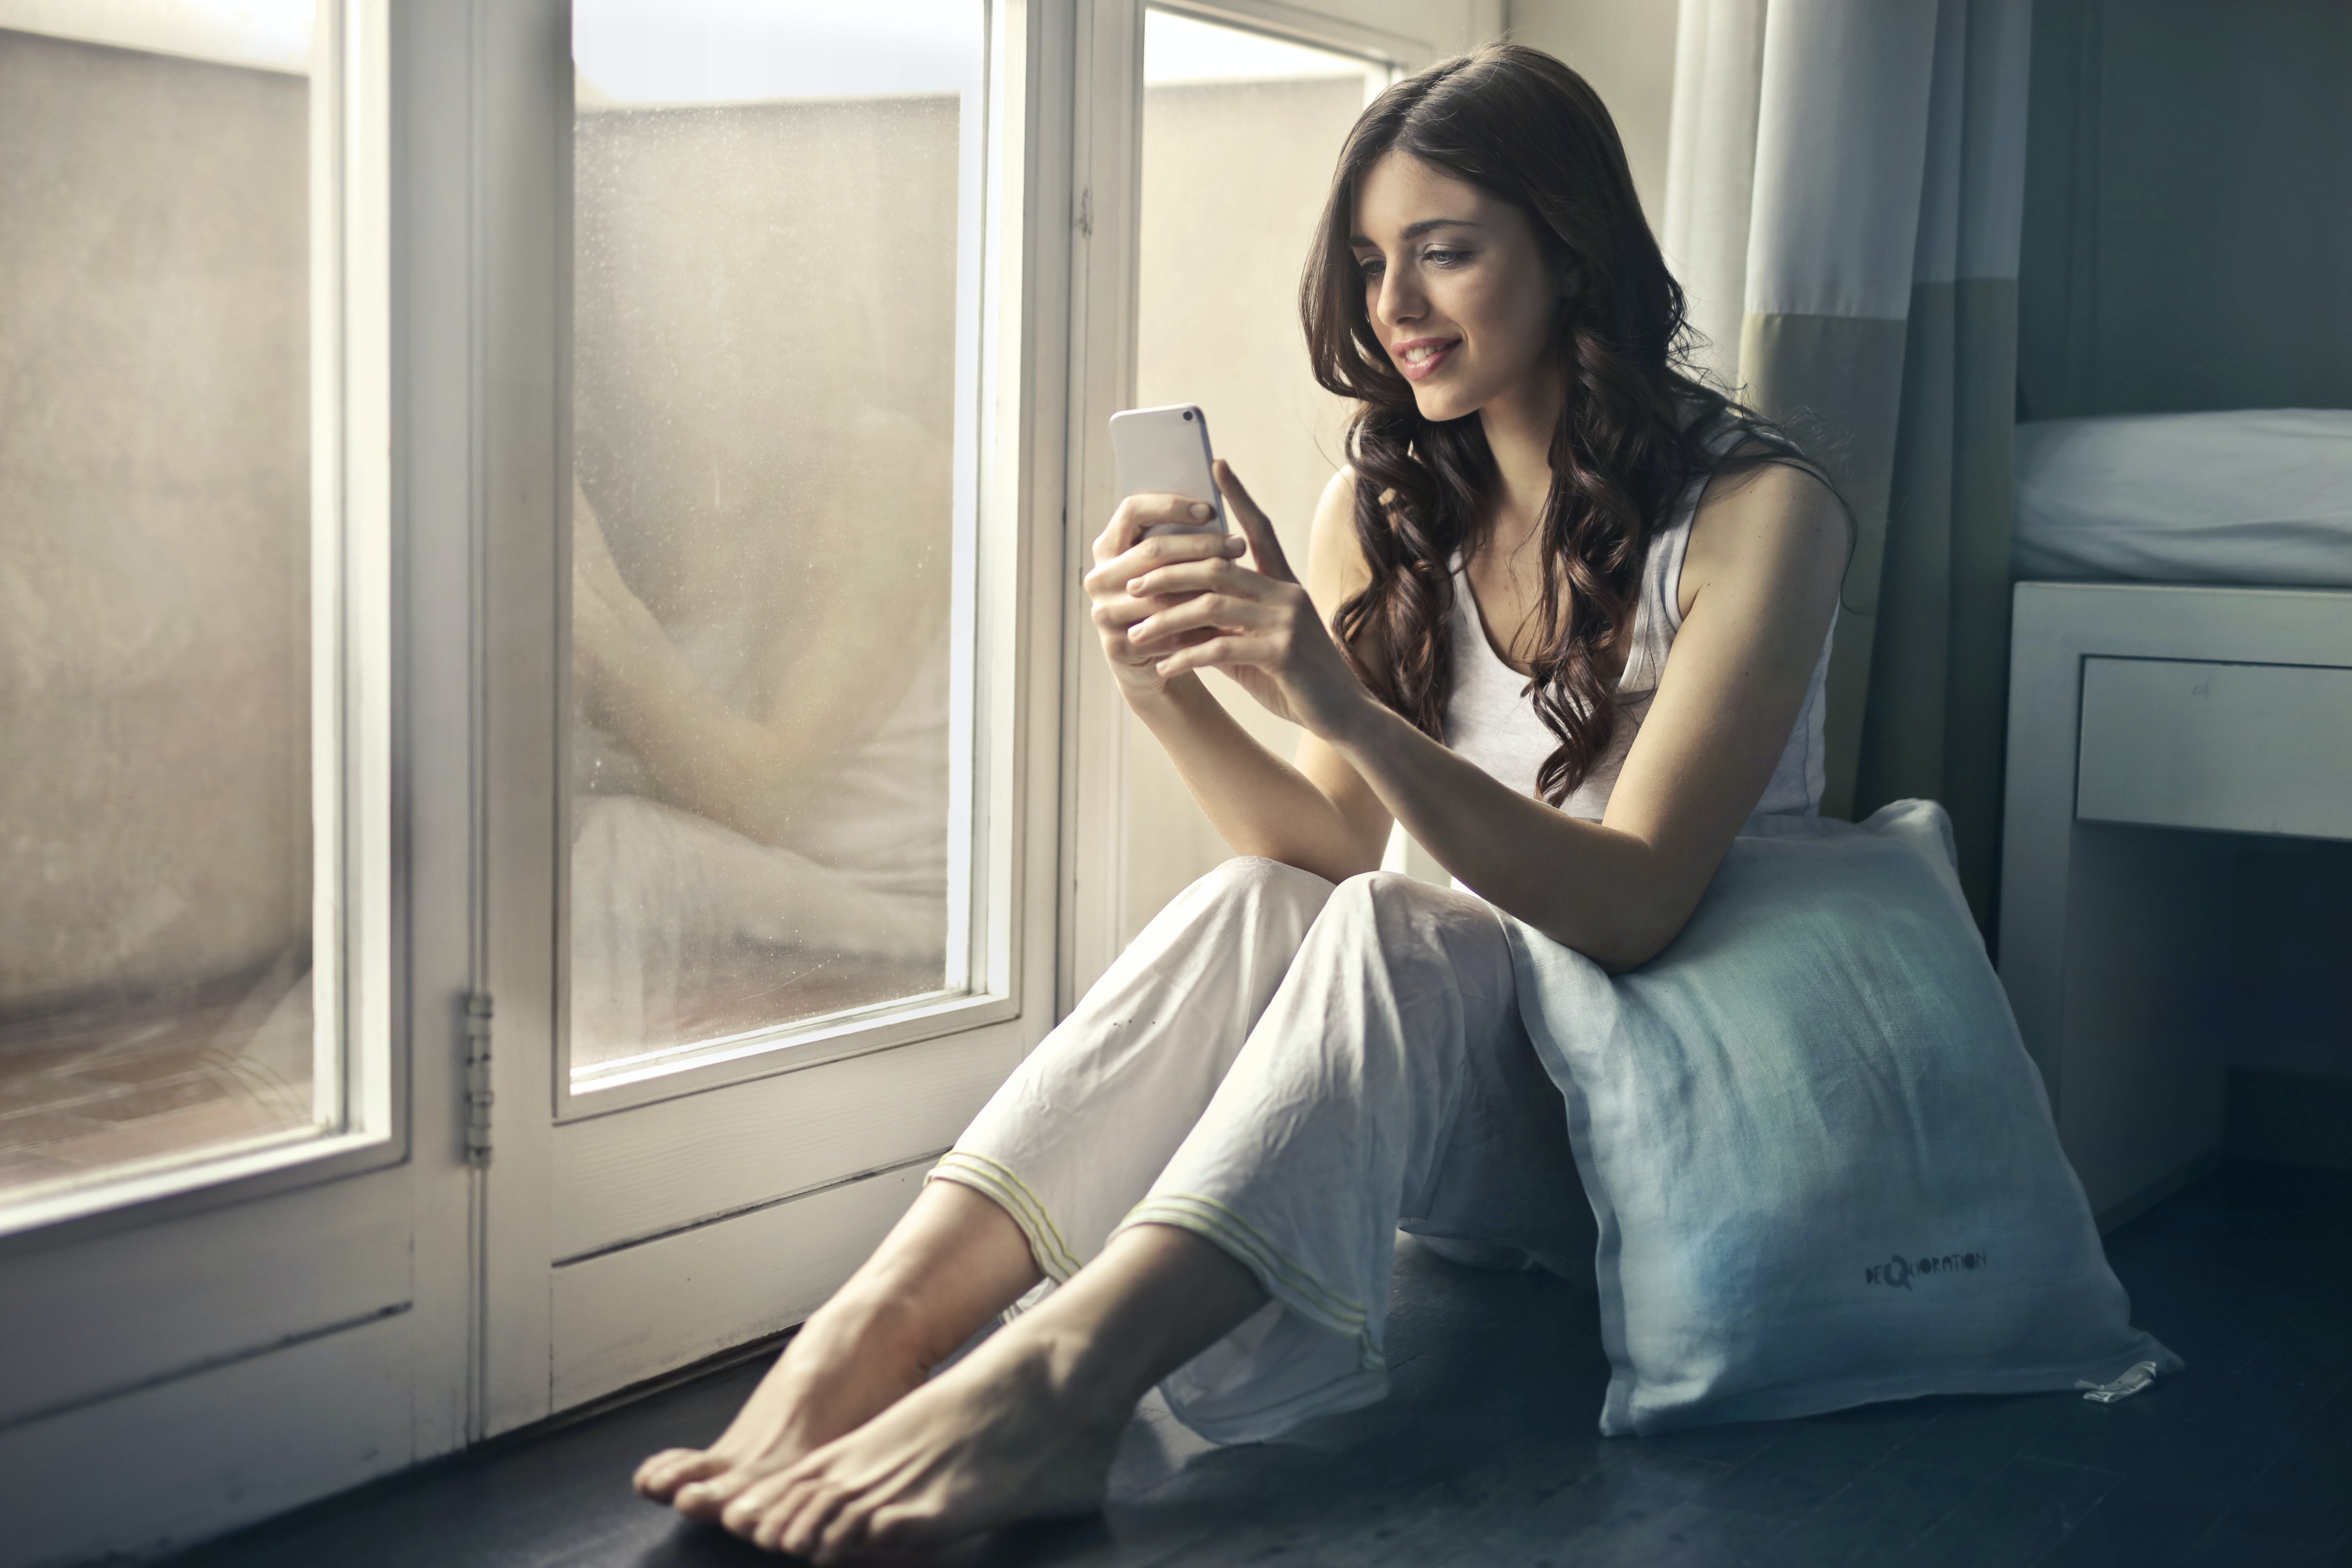 Woman Sitting Beside Window Holding Phone